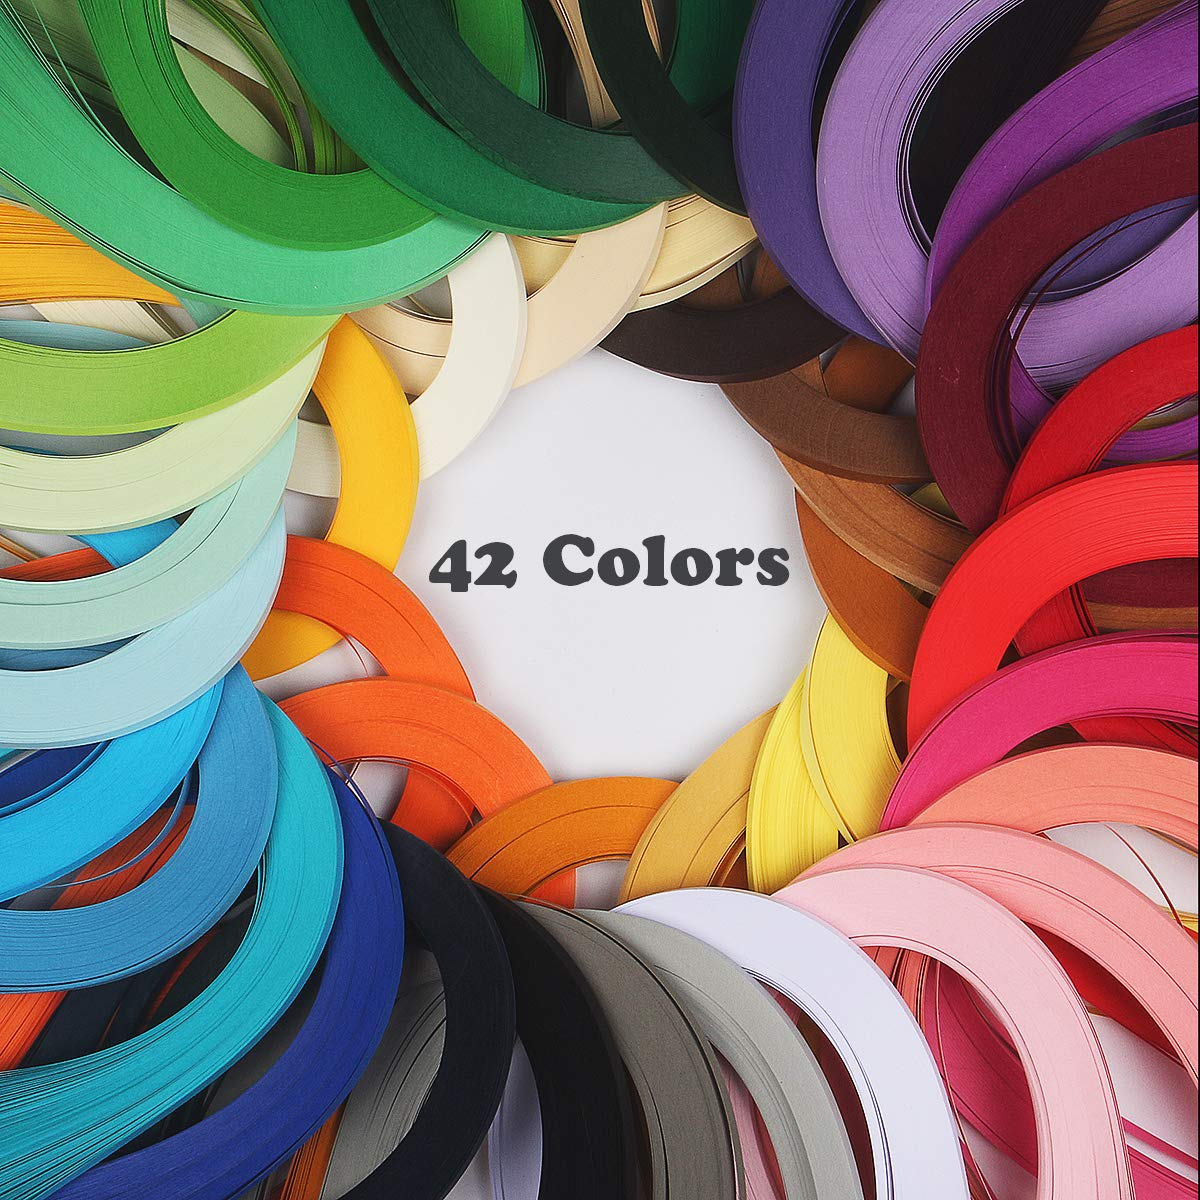 Paper Quilling Strips Kits - 42 Colors One Color and 120 Strips per Pack 3/5/10mm Width Available (540mm x 3mm) by weeksweet